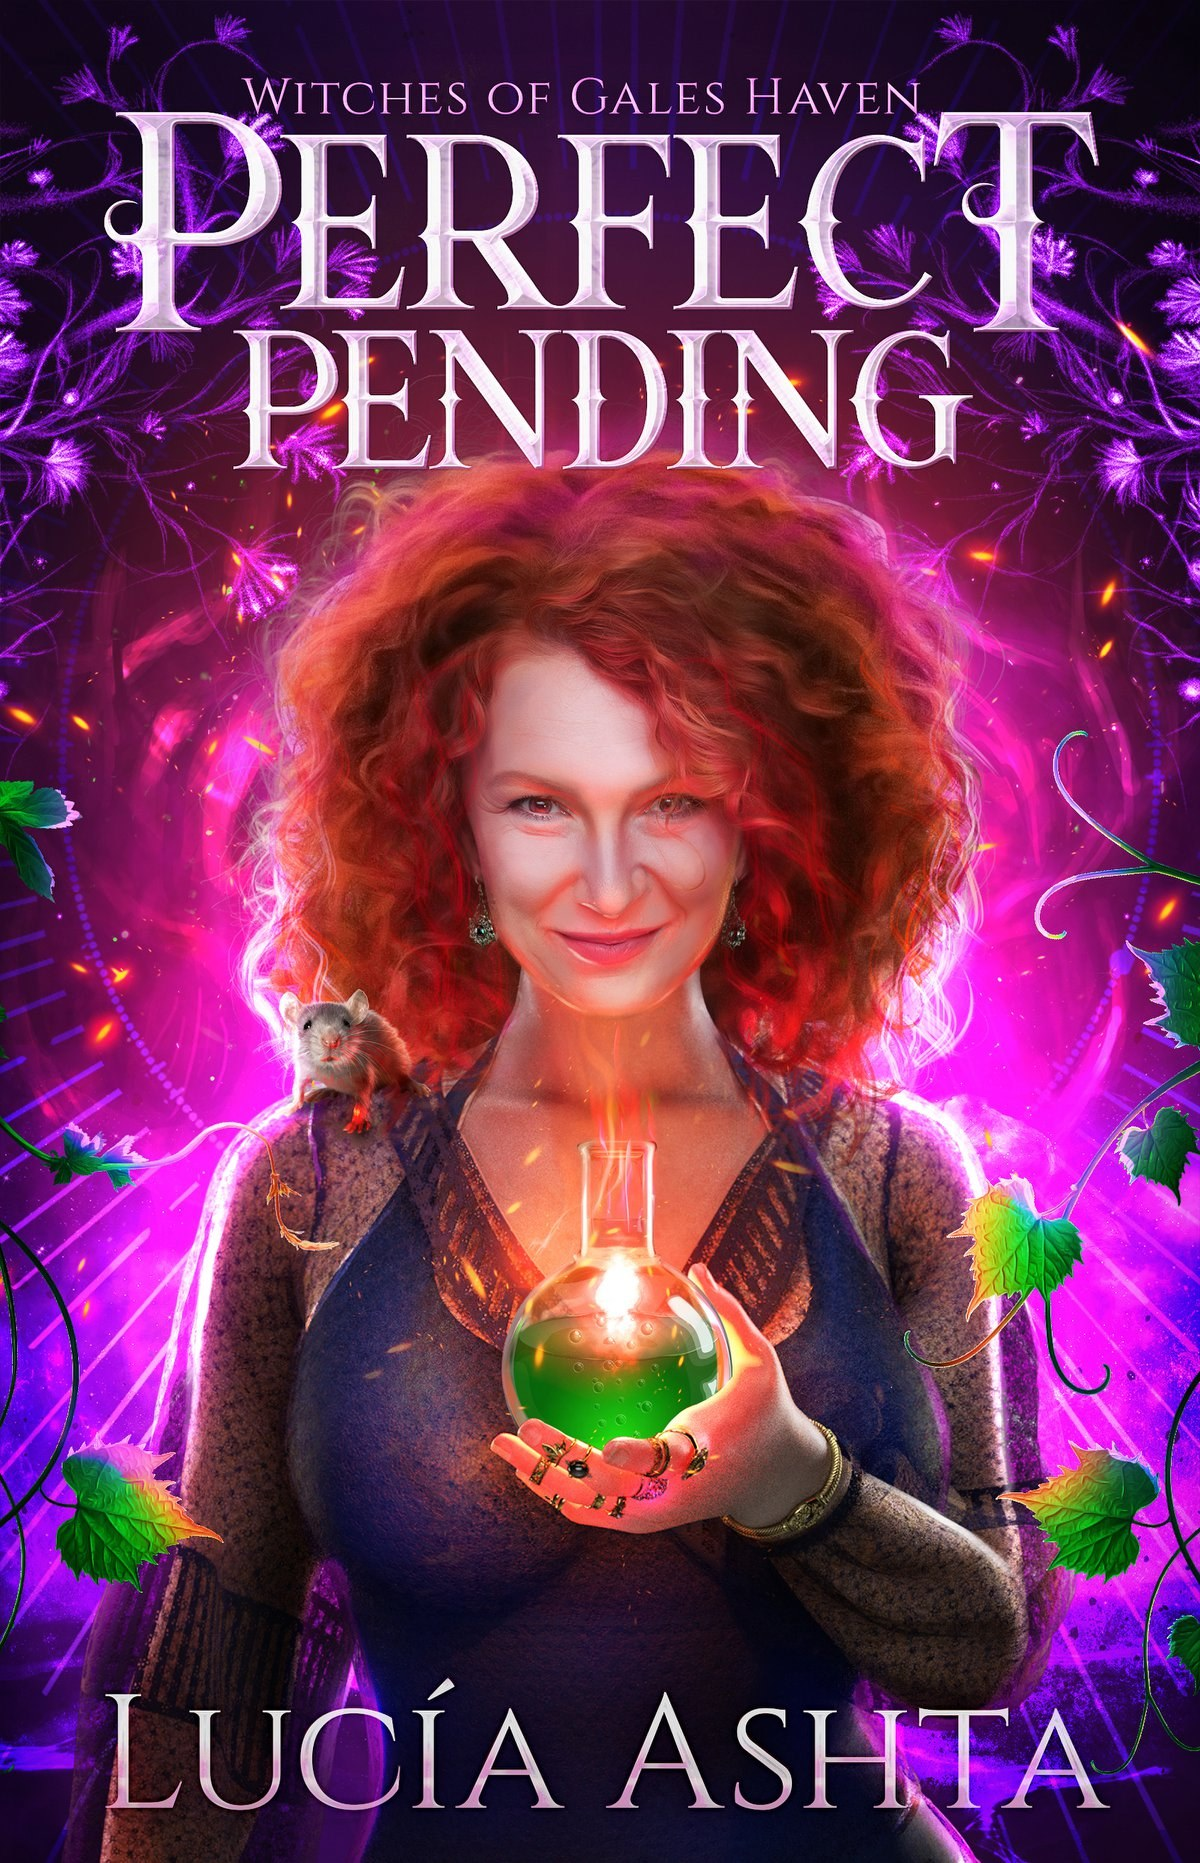 The cover of Perfect Pending, by Lucia Ashta